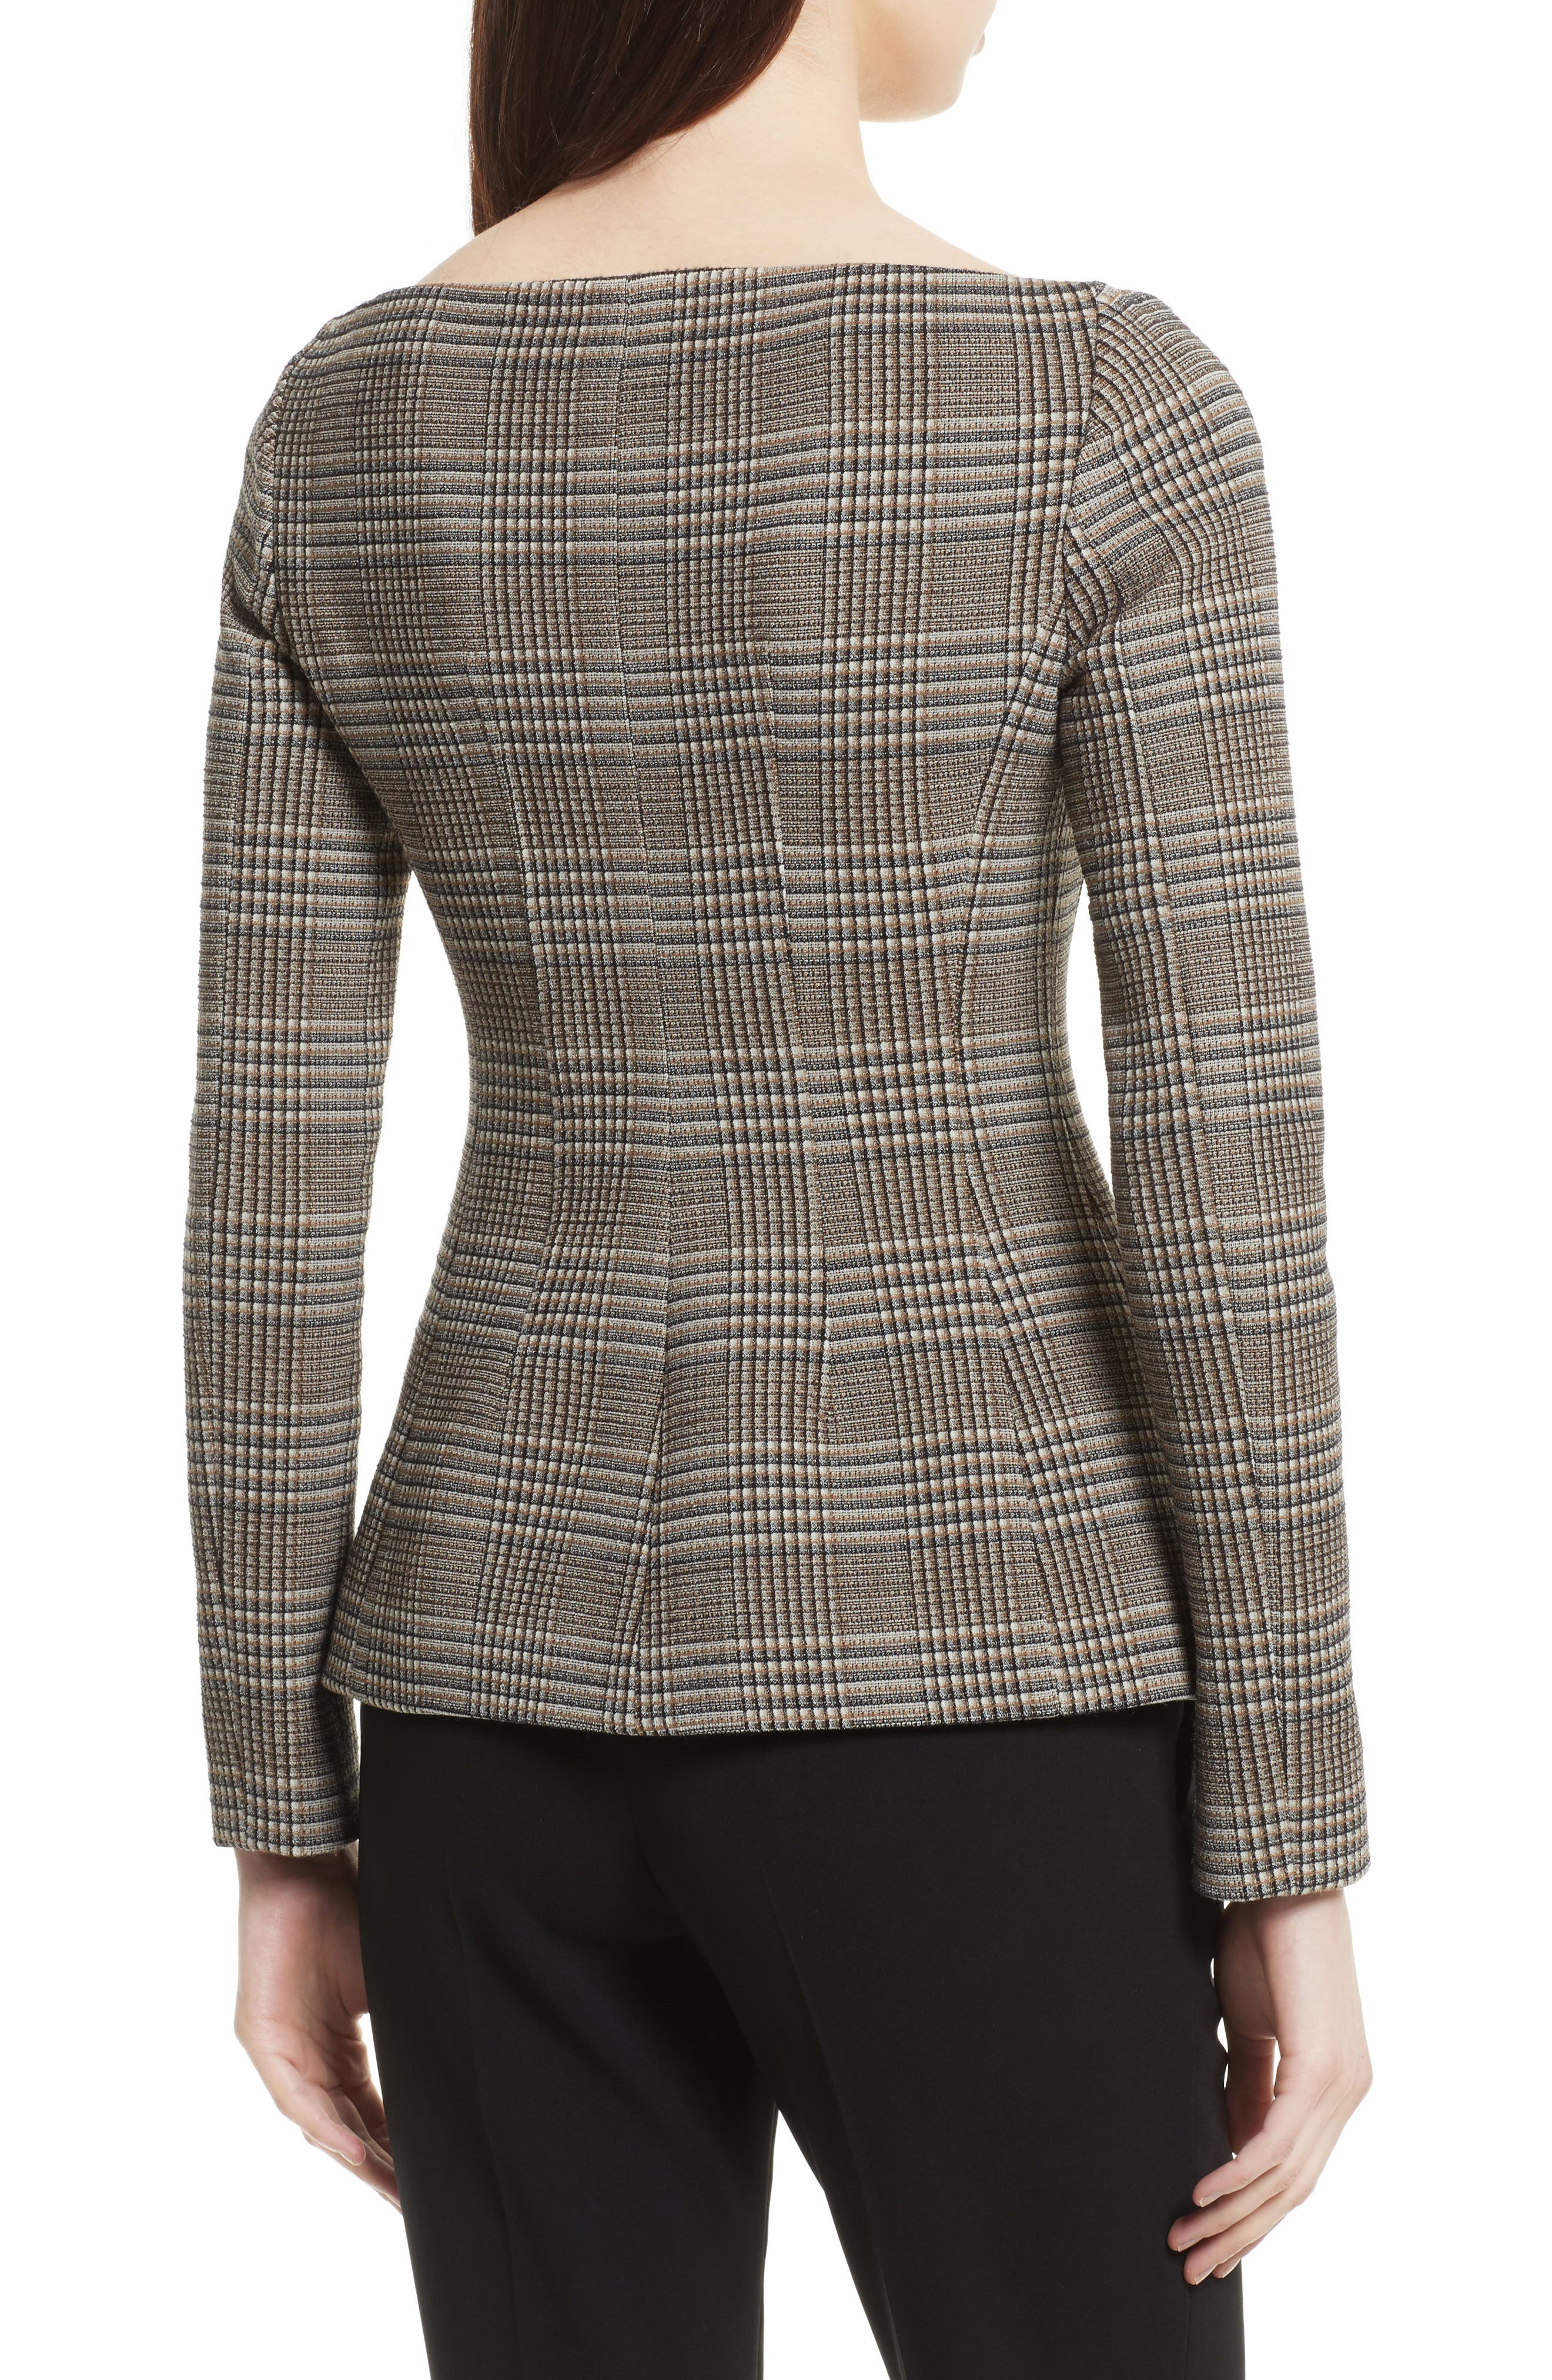 Hadfield Off the Shoulder Stretch Wool Jacket,                             Alternate thumbnail 2, color,                             204